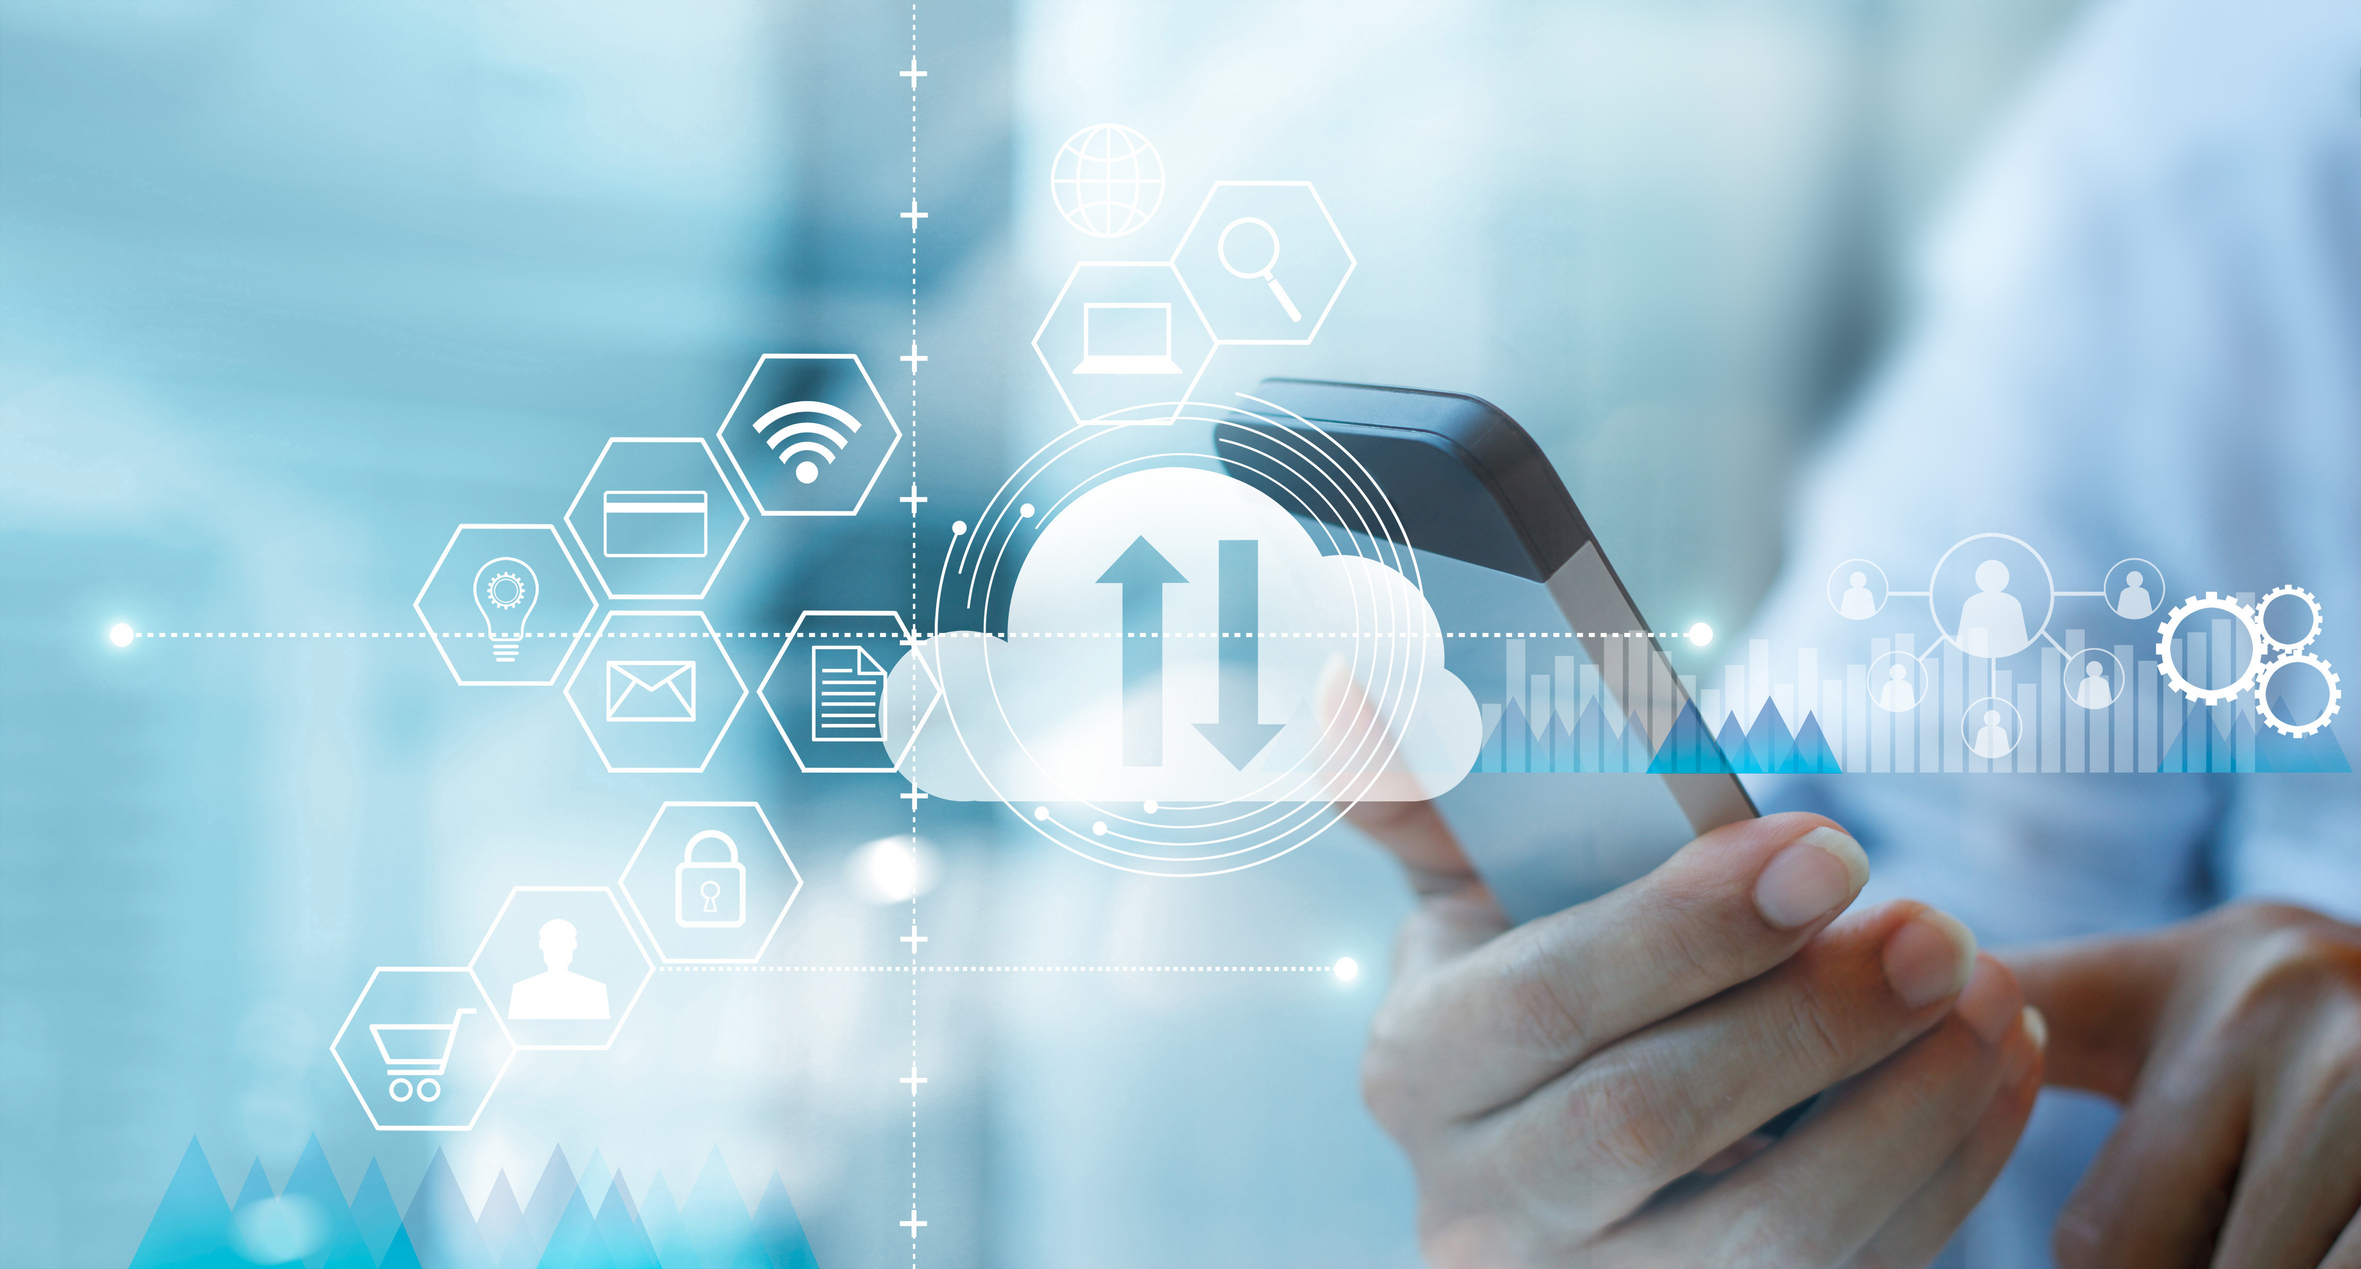 Businessman using mobile smartphone and connecting cloud computing service with icon customer network connection. Cloud device online storage. Cloud technology internet networking concept.